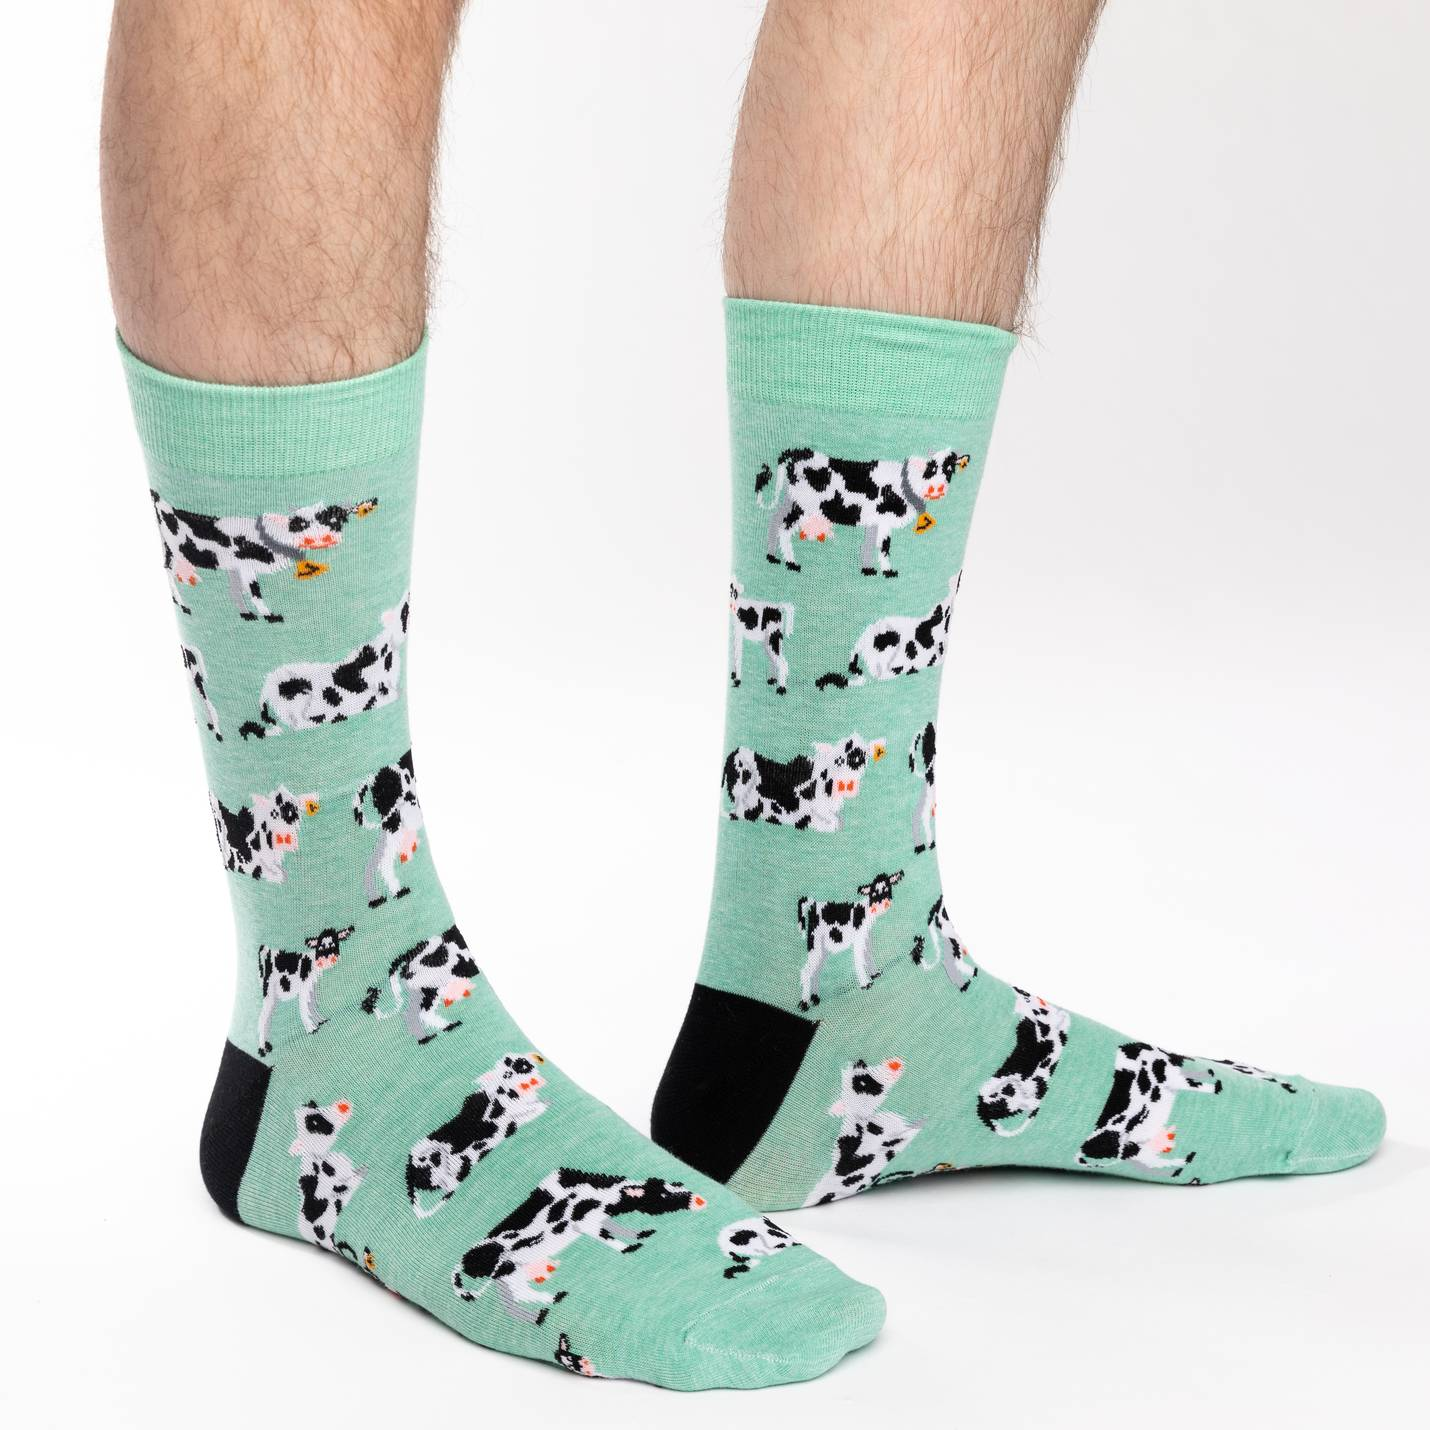 Good Luck Sock Mens - Cows in a Field